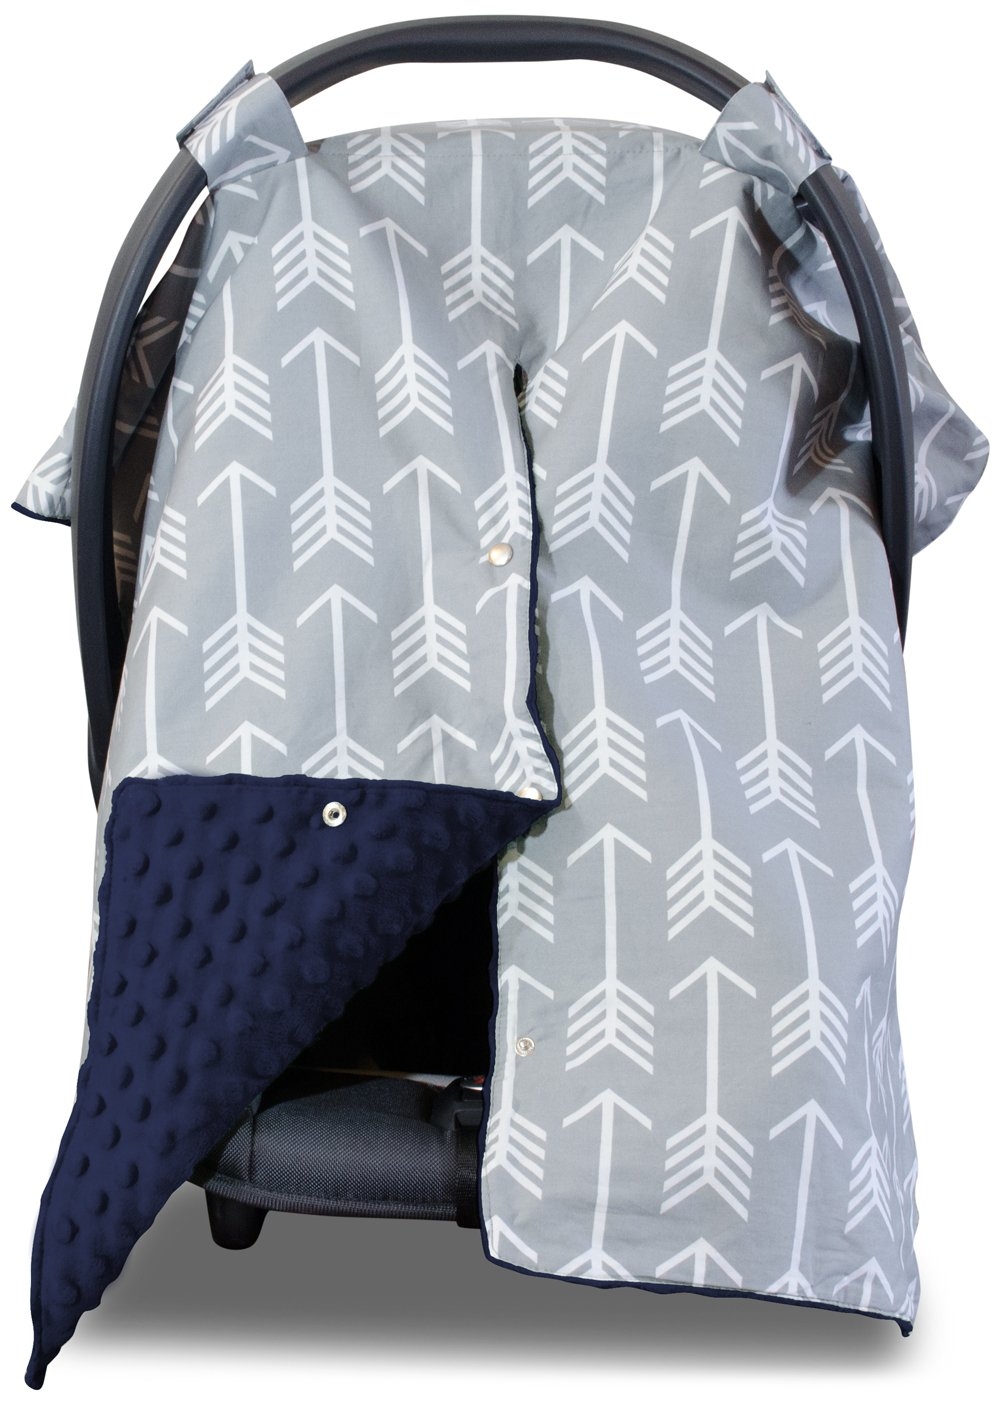 Navy and gray elephant print canopy infant car seat cover//Graco/&custom size